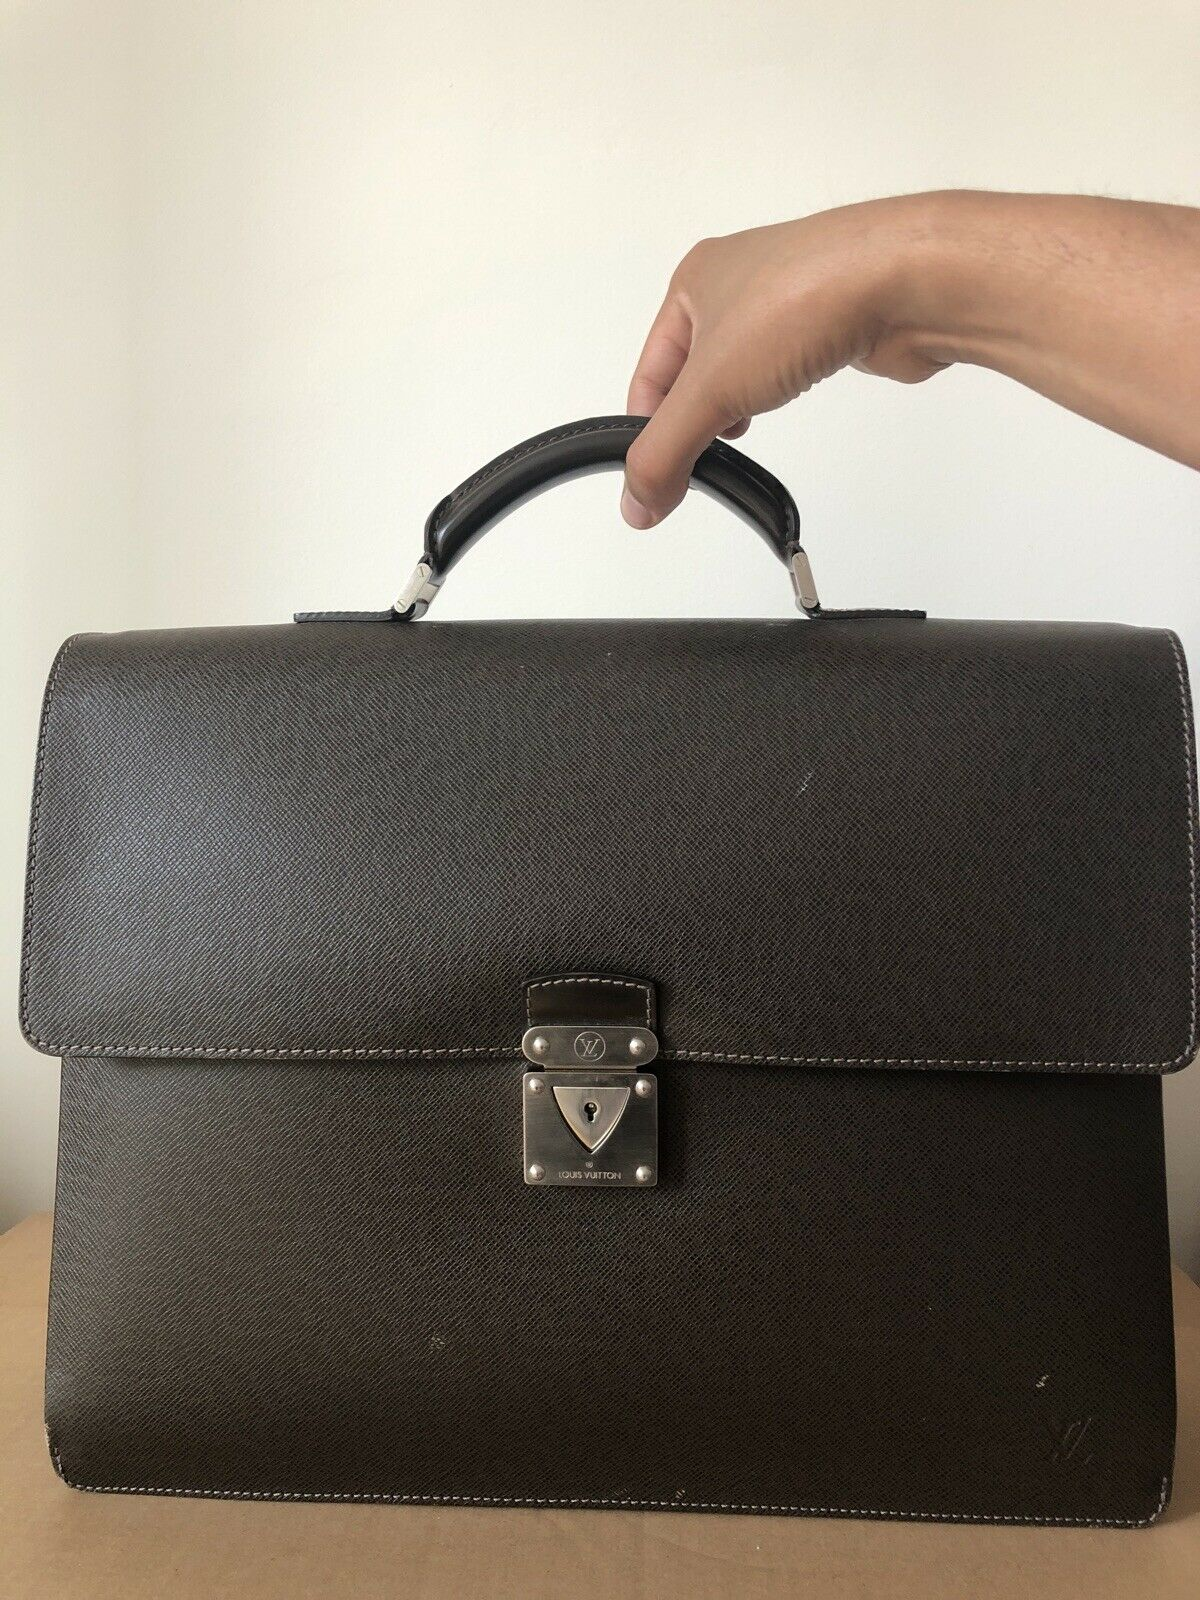 LOUIS VUITTON TAIGA LEDER ROBUSTO BUSINESS TASCHE BRIEFCASE AKTENTASCHE BAG - 490.00,Kaufpreis 490,datum 01.09.2020 02:45:34,Website